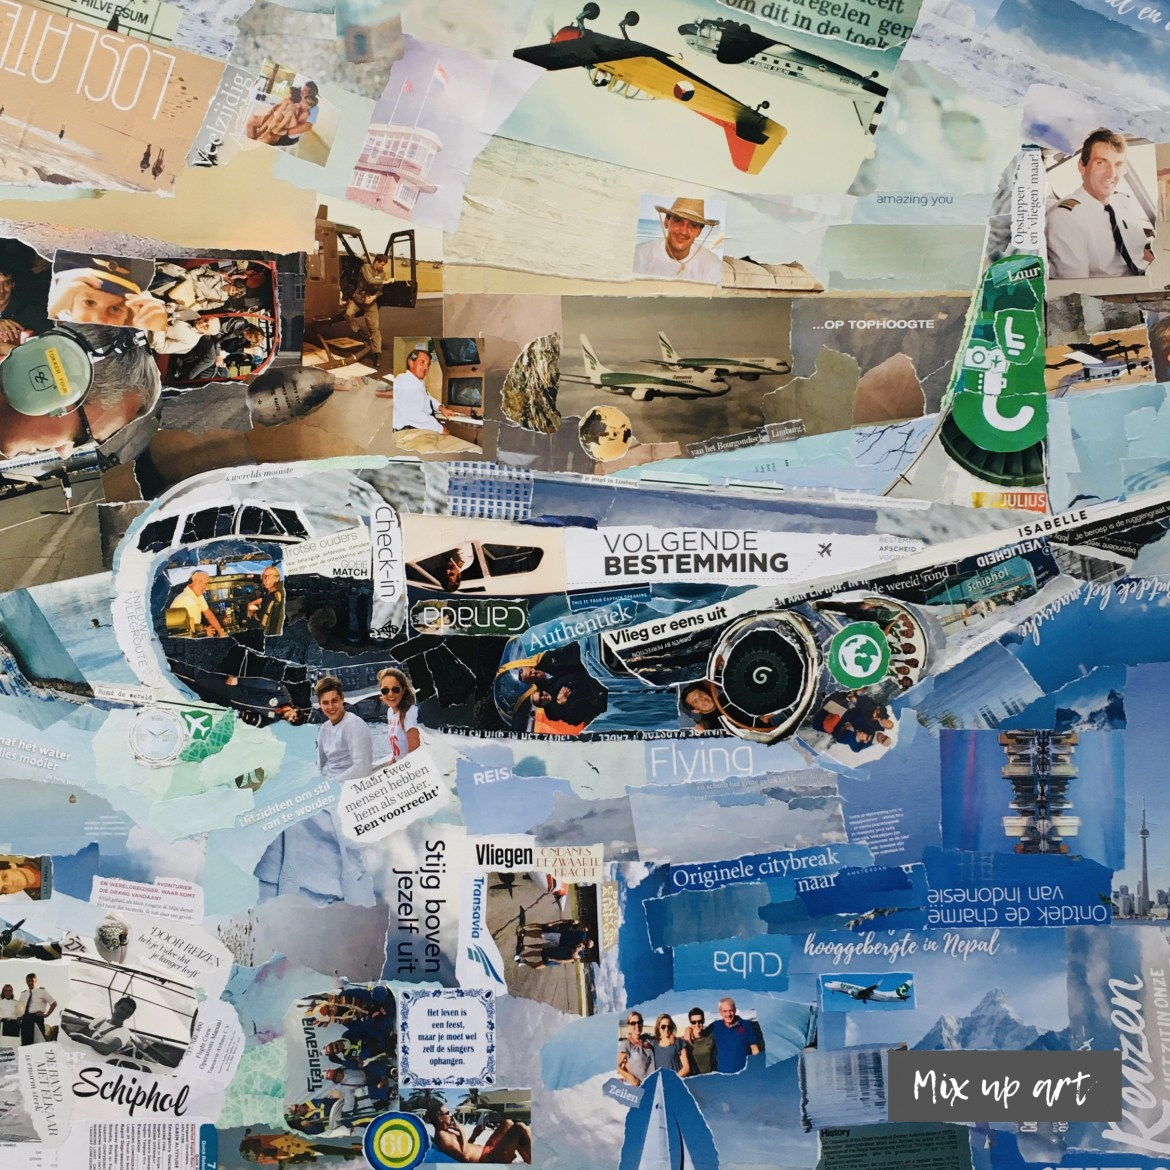 Airplane - In opdracht - Collage (80 x 80)